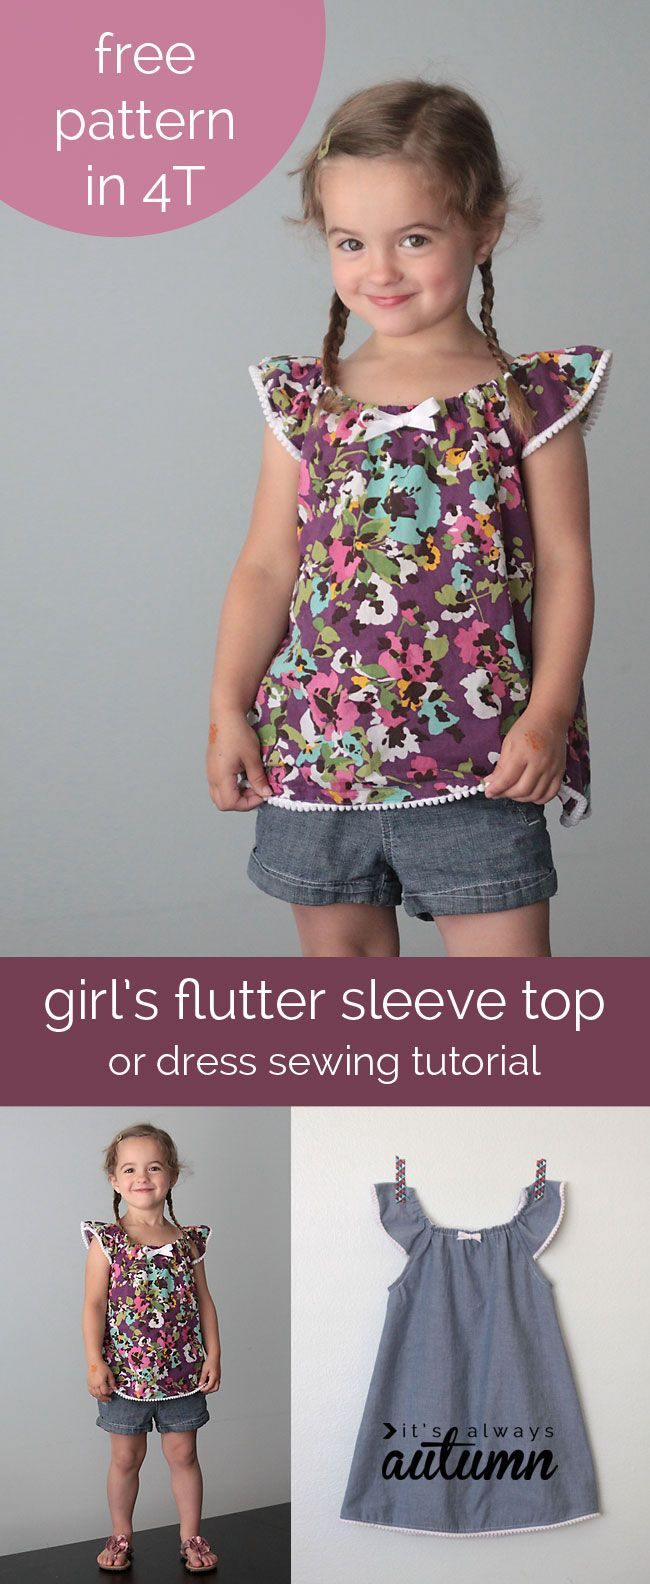 sewing tutorial for a girls flutter sleeve top or dress plus a free pattern in size 4T